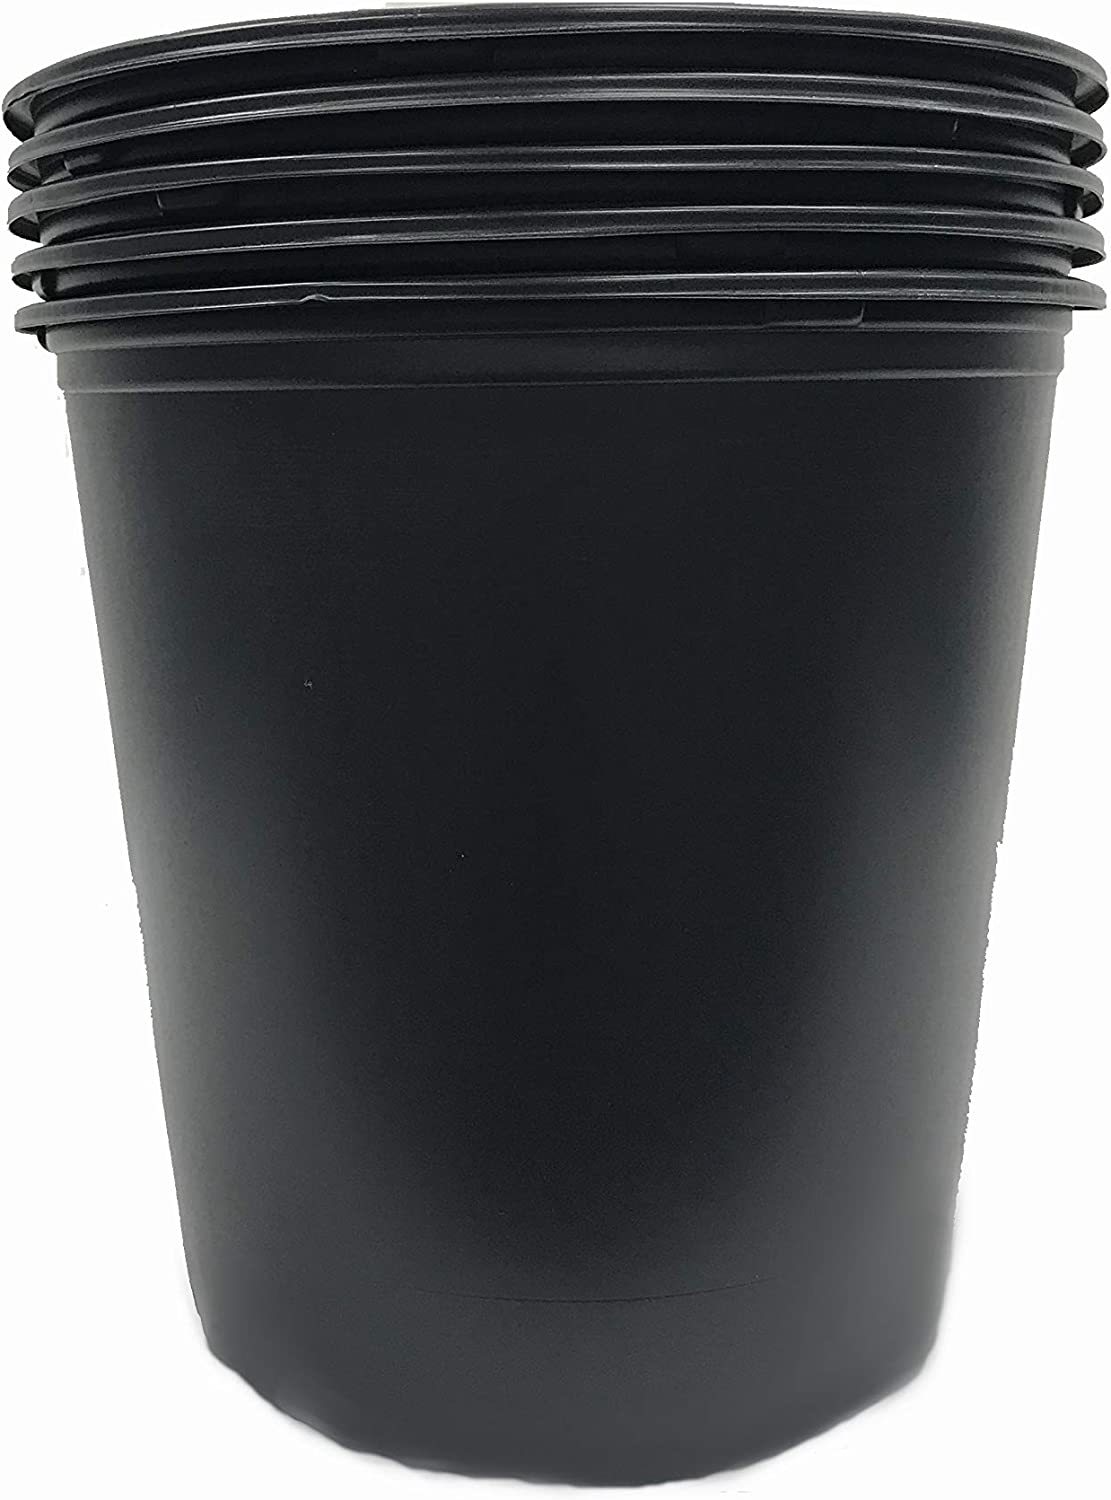 Viagrow VHPP500-5 Nursery Pot, 5 Trade Gallons (4. 02 US Gal/ 15.19 L/ 924 cu in), 5 Gallon, Black